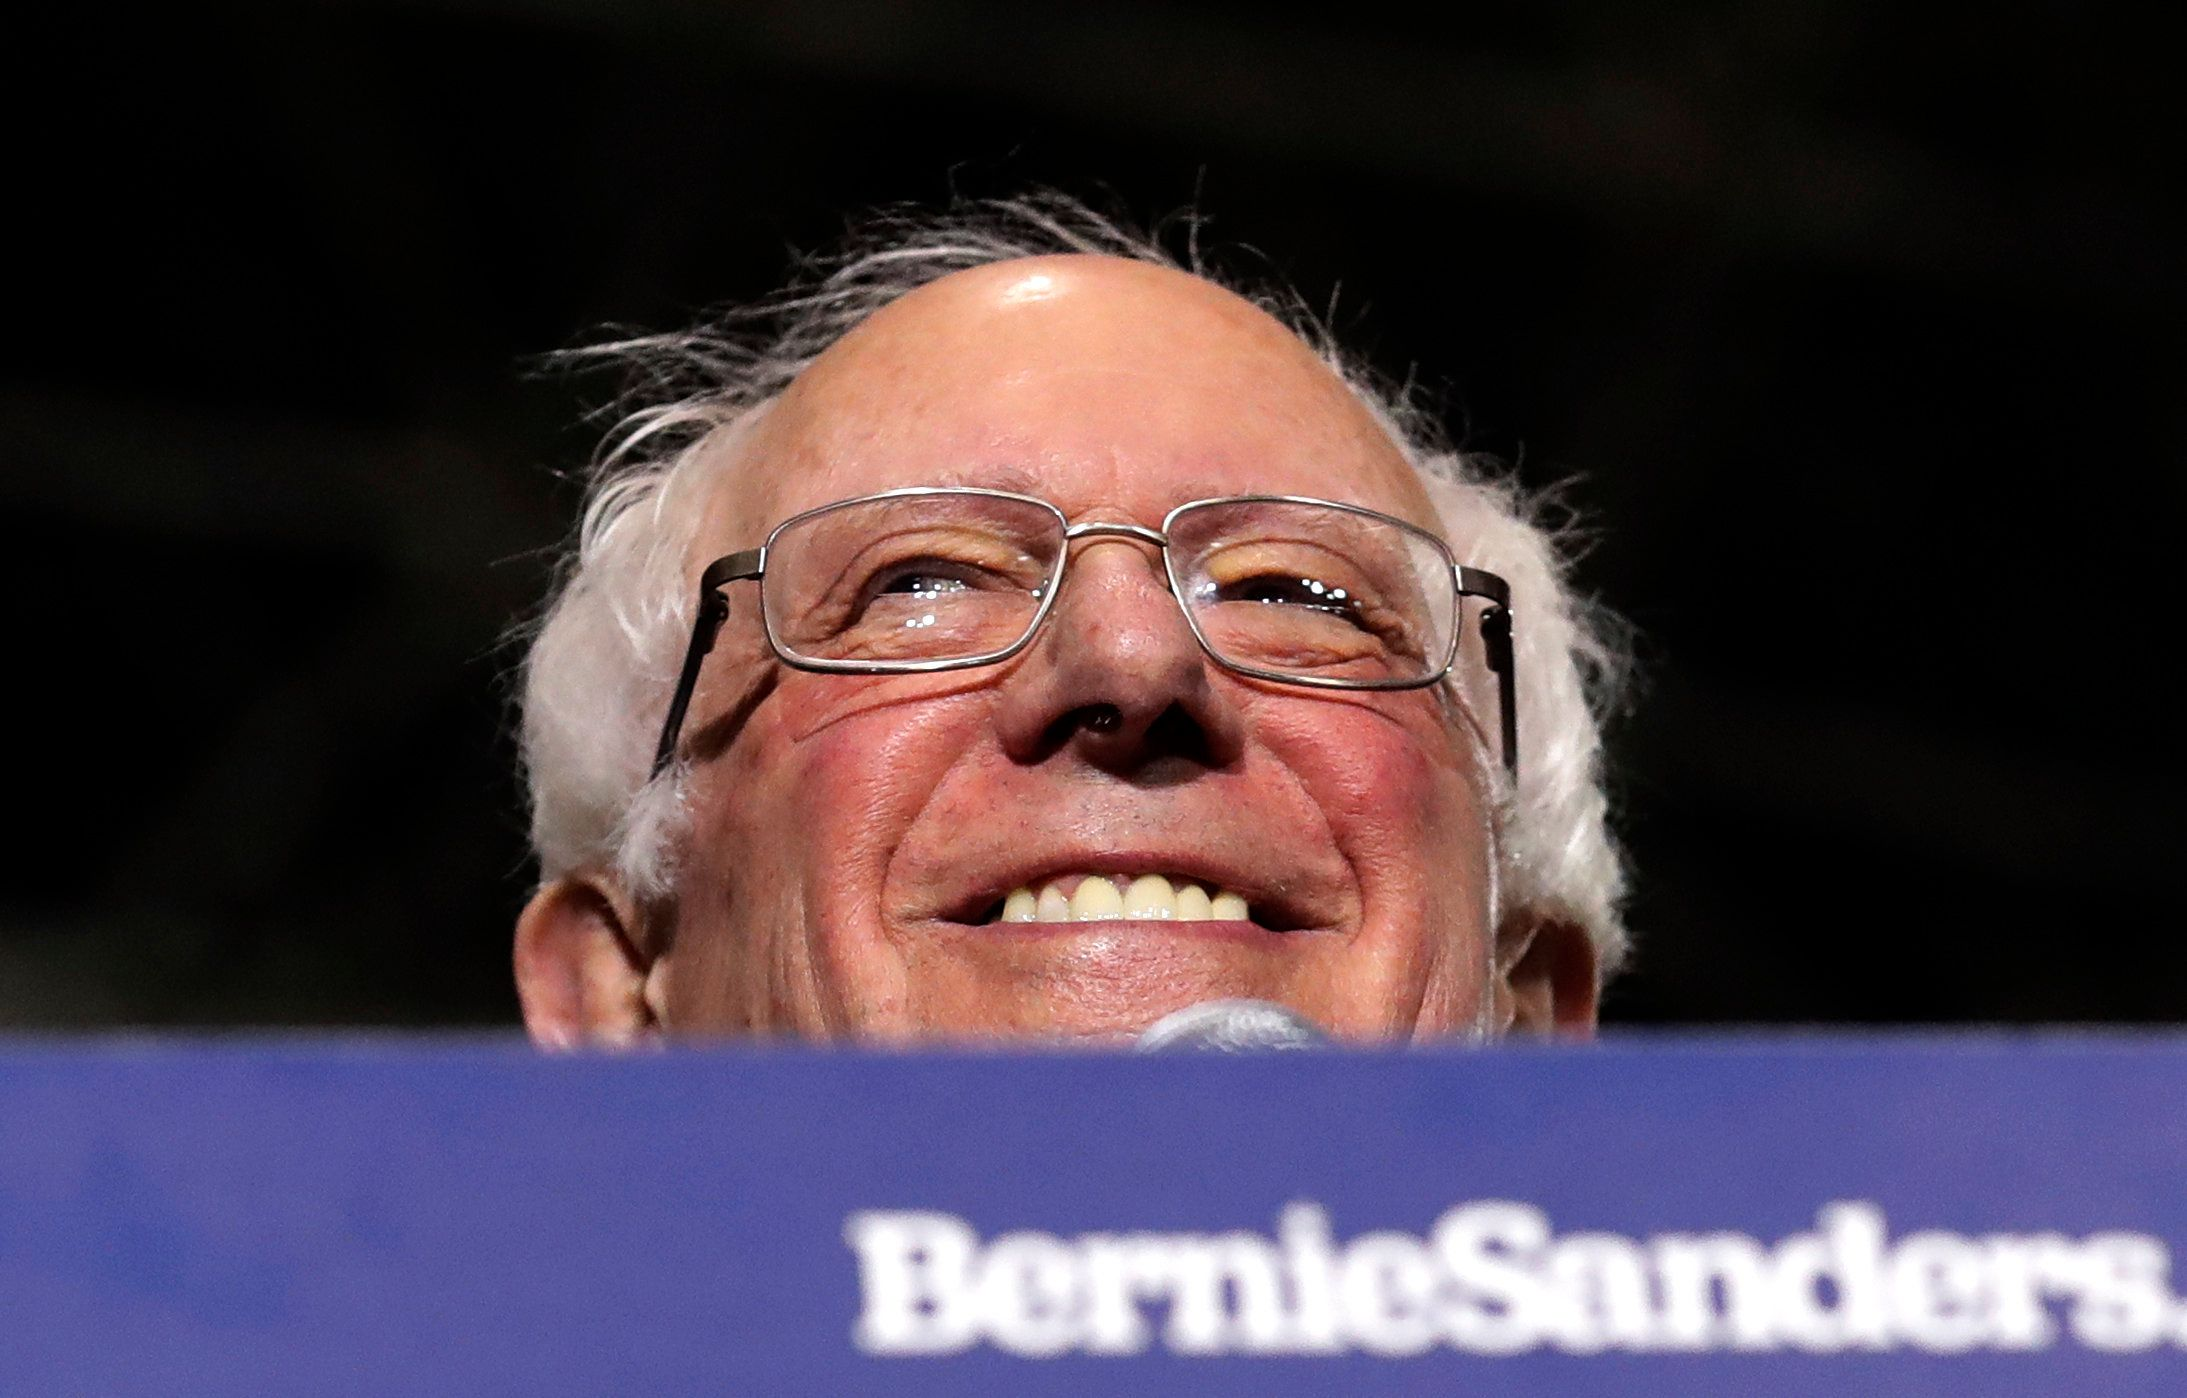 In this March 3, 2019, photo, Sen. Bernie Sanders, I-Vt., smiles as he kicks off his 2020 presidential campaign at Navy Pier in Chicago. (AP Photo/Nam Y. Huh)